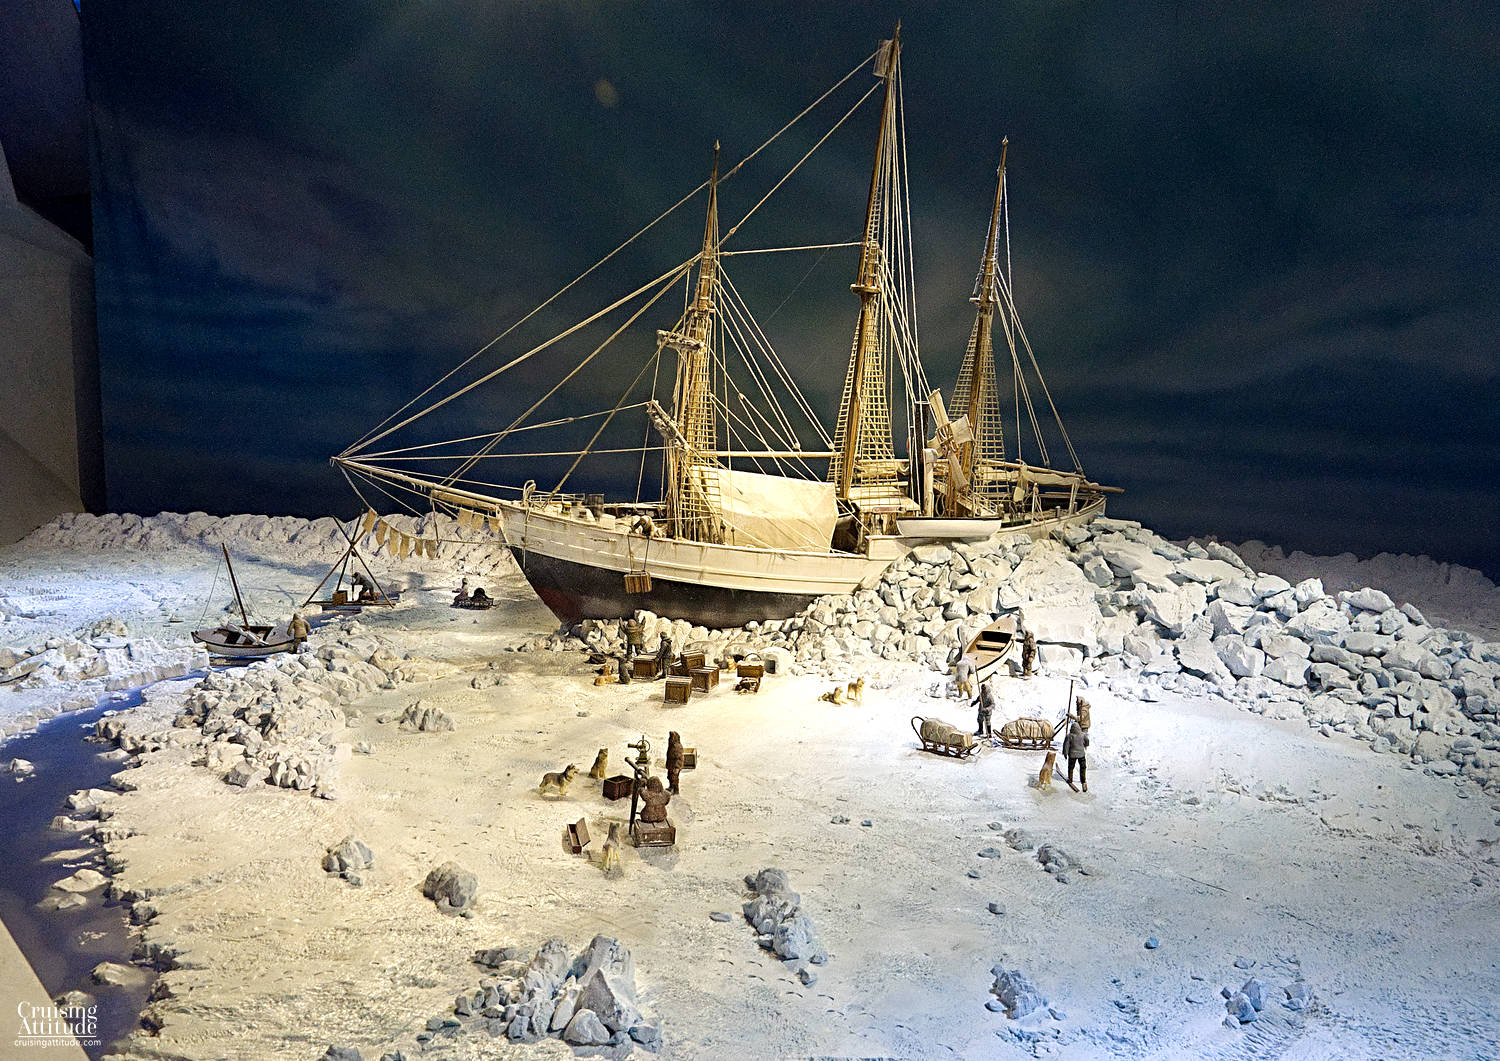 City Visit Oslo - Fram Polar Expedition Museum | Cruising Attitude Sailing Blog | Discovery 55